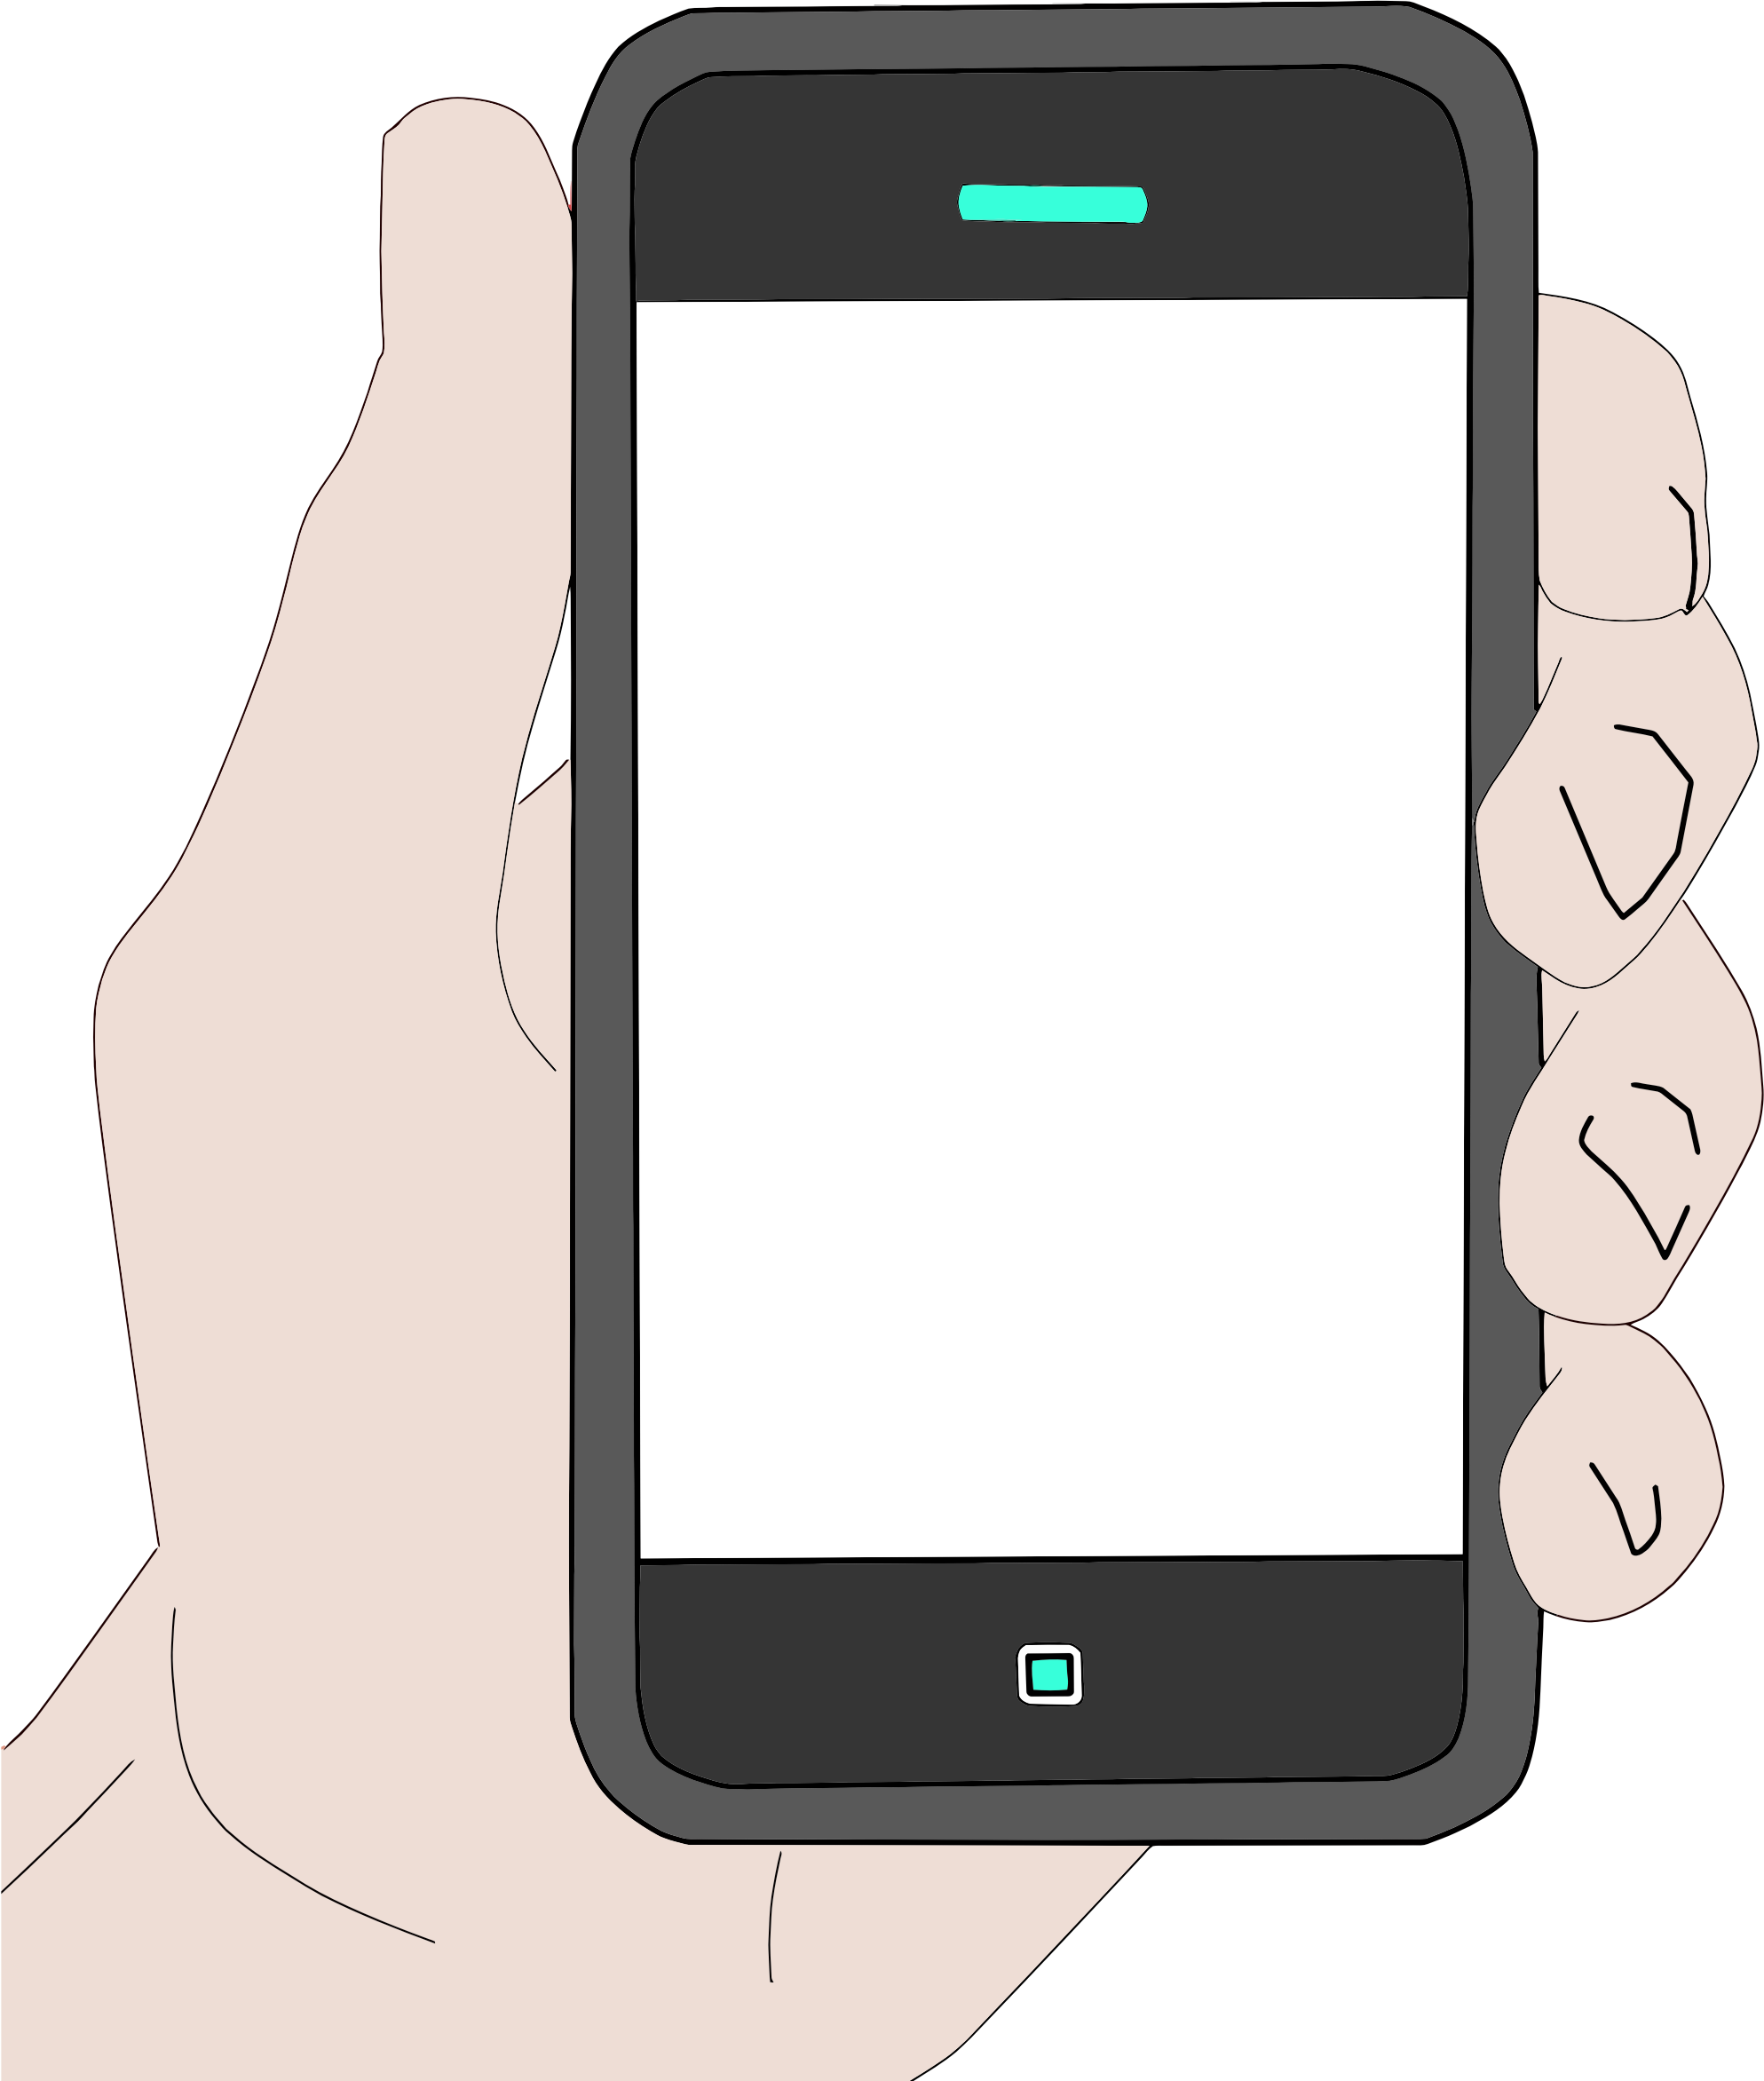 Phone clipart gadget. Hand holding cell big